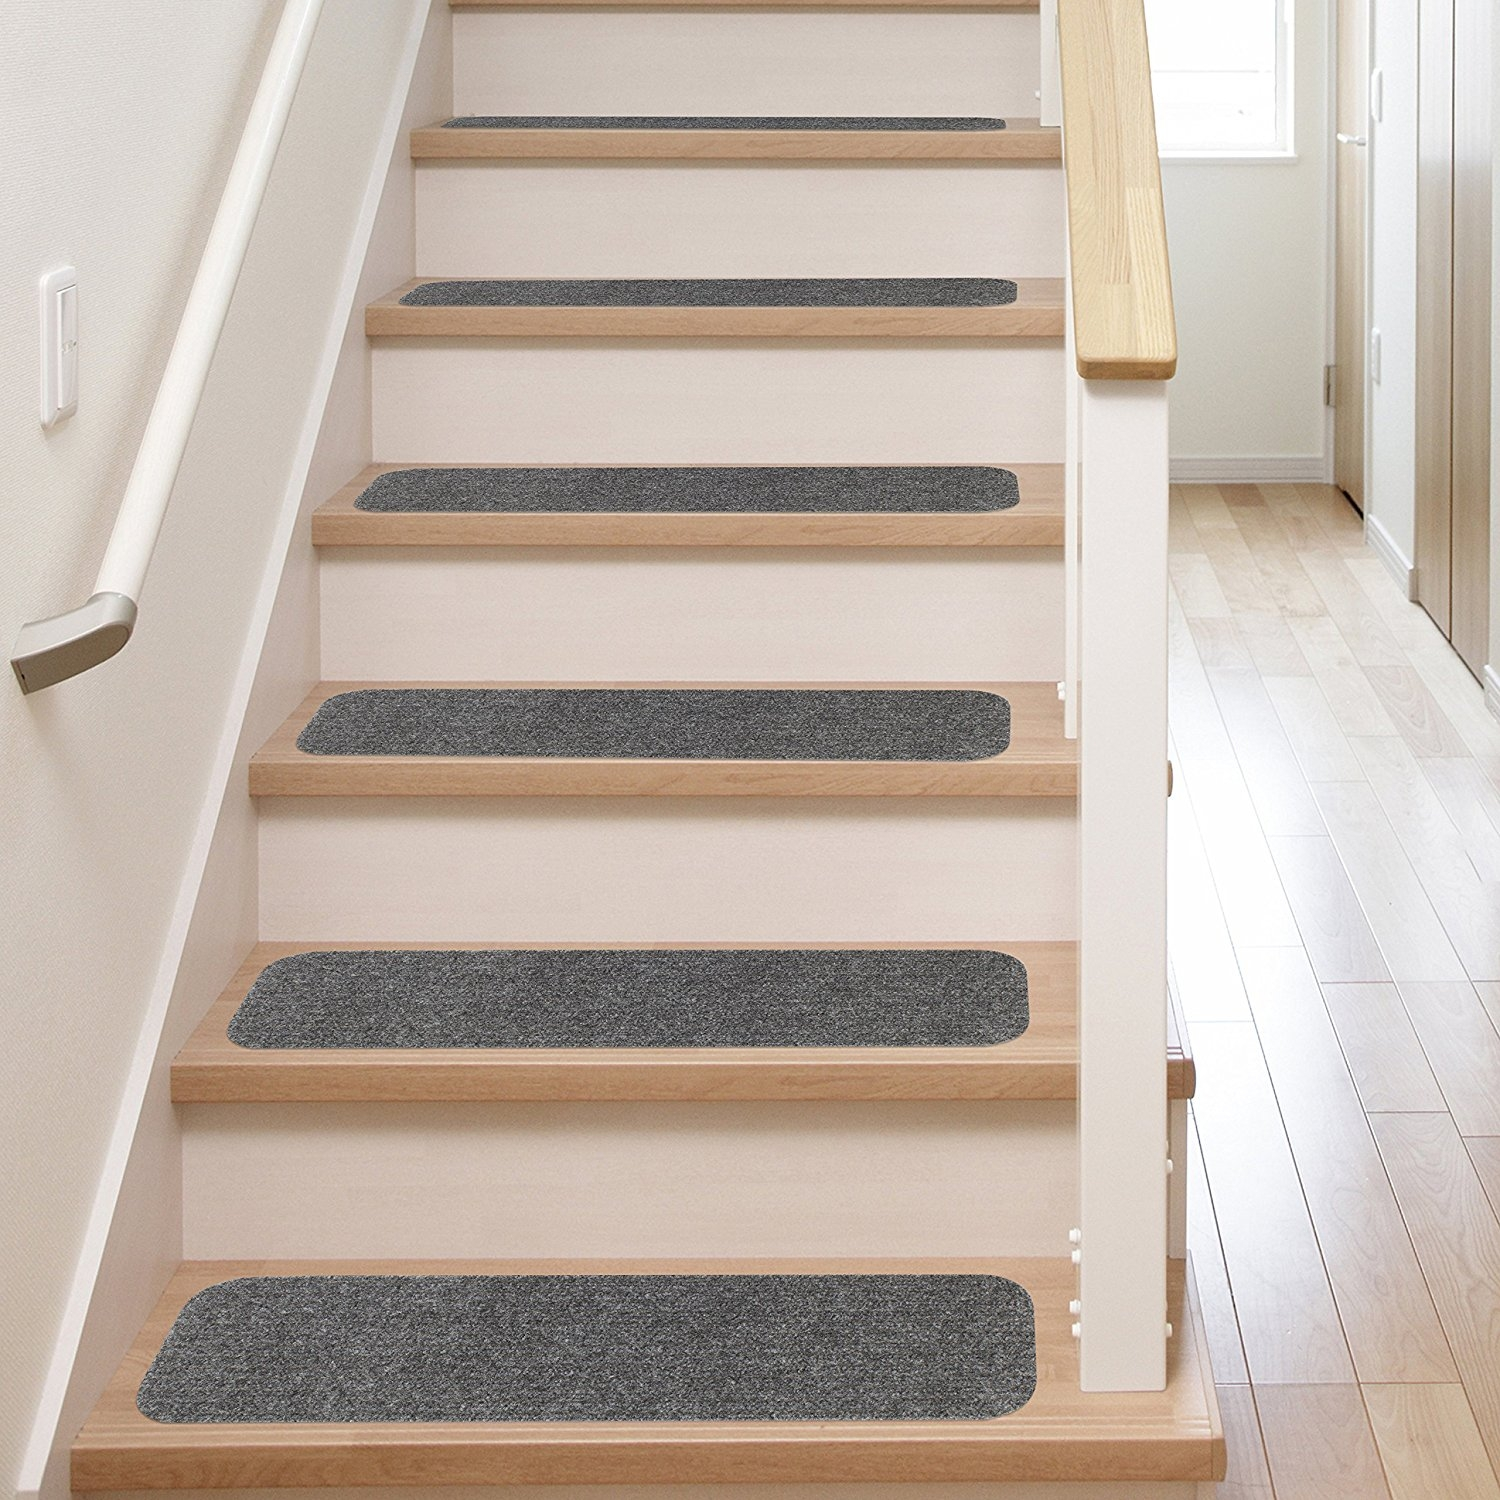 13 Stair Treads Non Slip Carpet Pads Easy Tape Installation Pertaining To Carpet Treads For Wooden Stairs (#1 of 20)